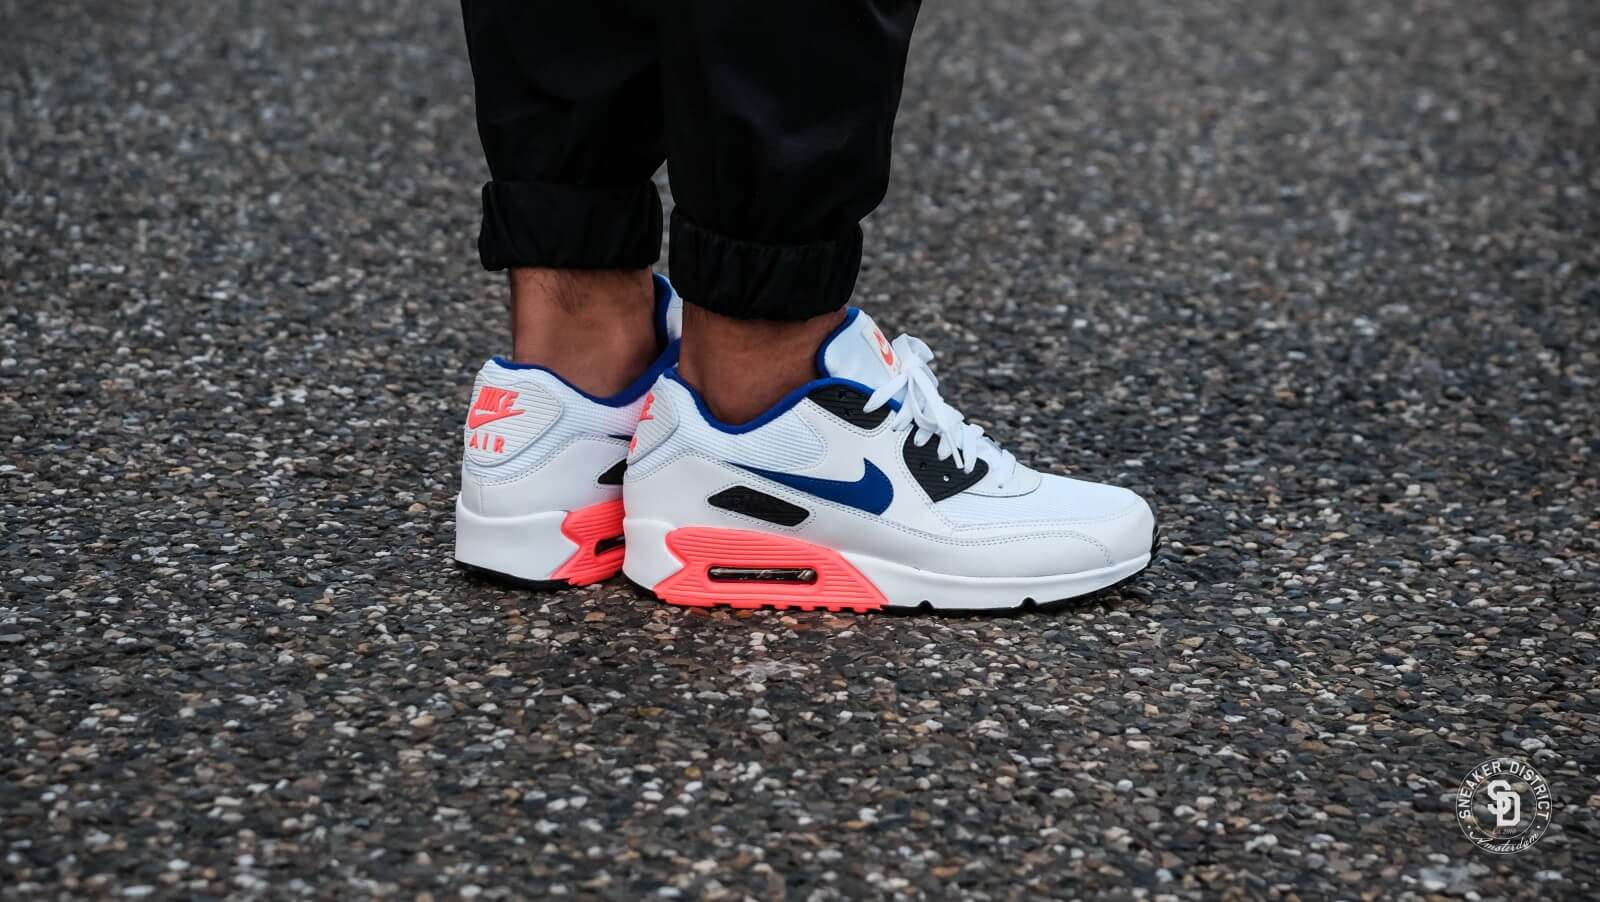 Nike Air Max 90 Essential WhiteUltramarine-Solar Red